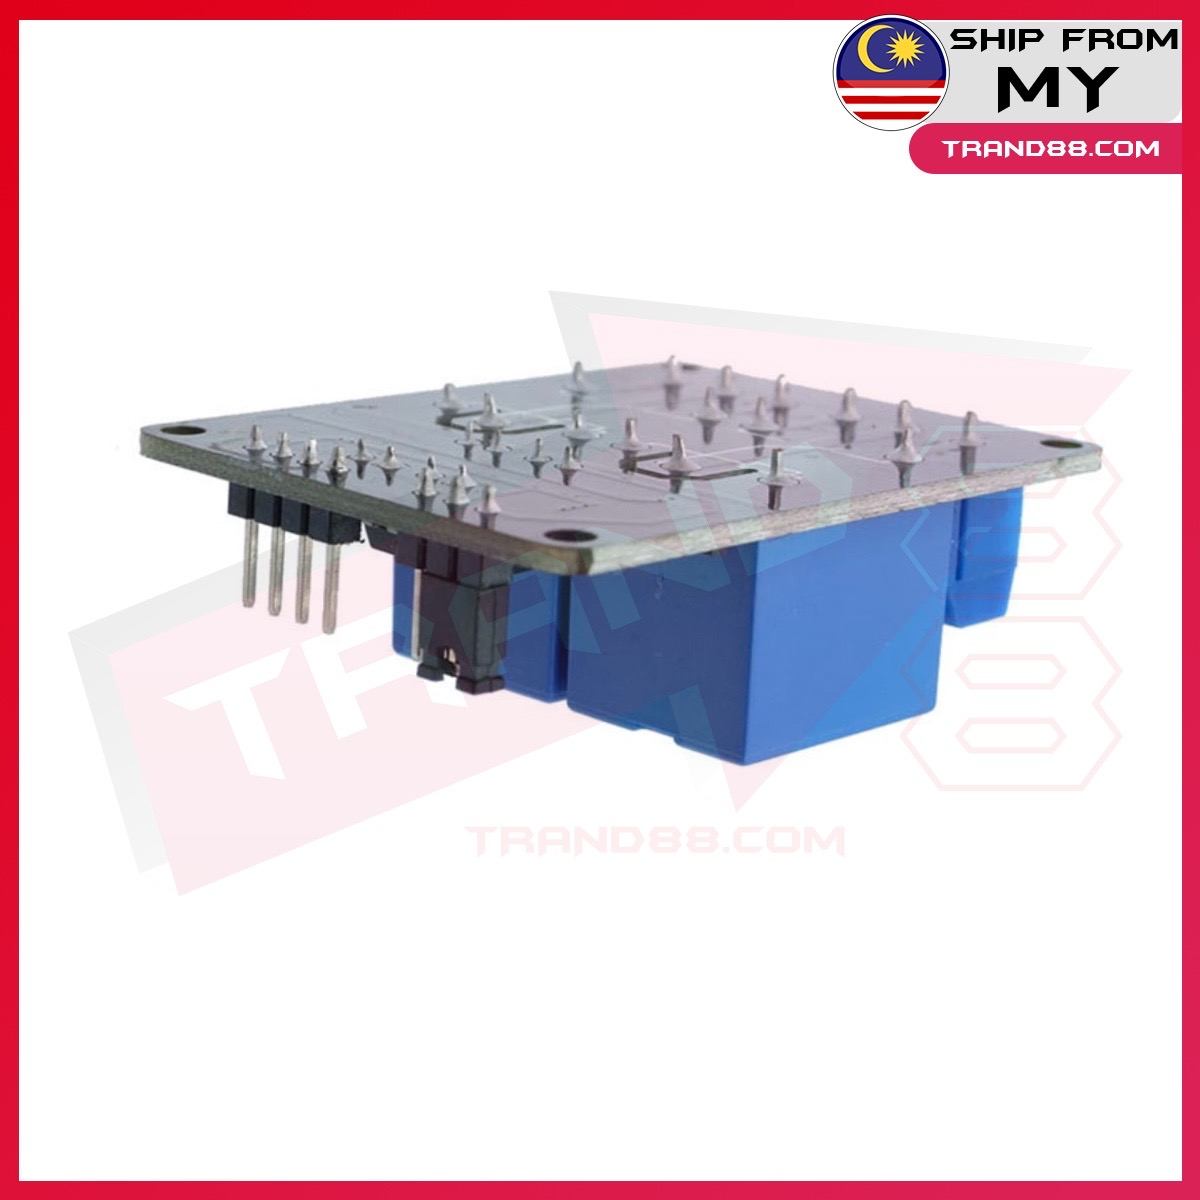 2 way relay module 5V with optical coupler protection relay expansion board MCU development board accessories